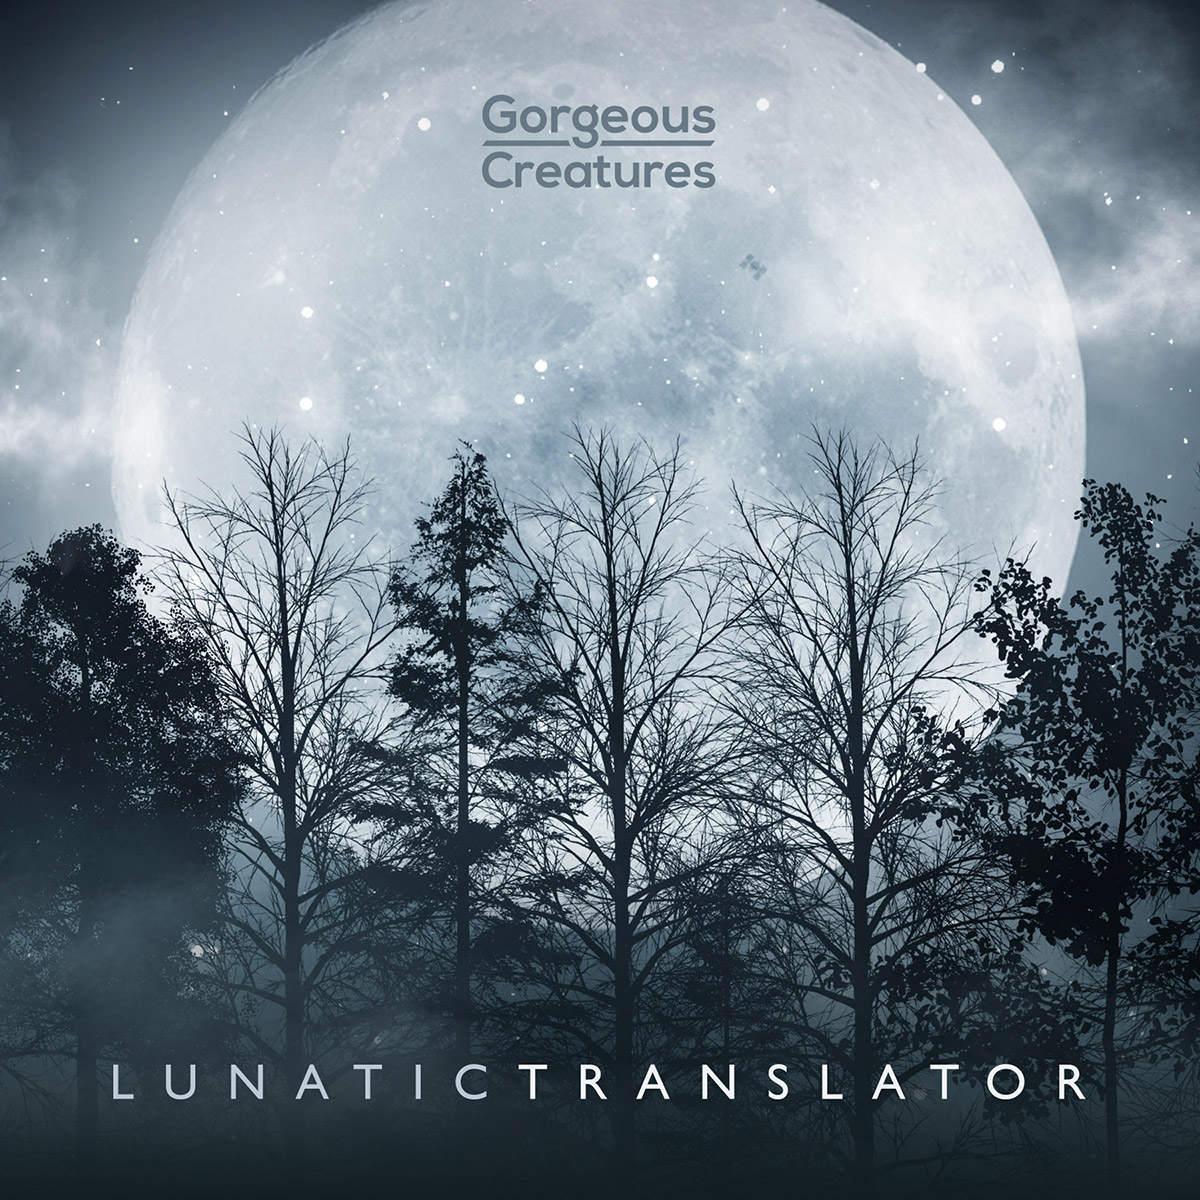 Lunatic Translator by Gorgeous Creatures by Gorgeous Creatures